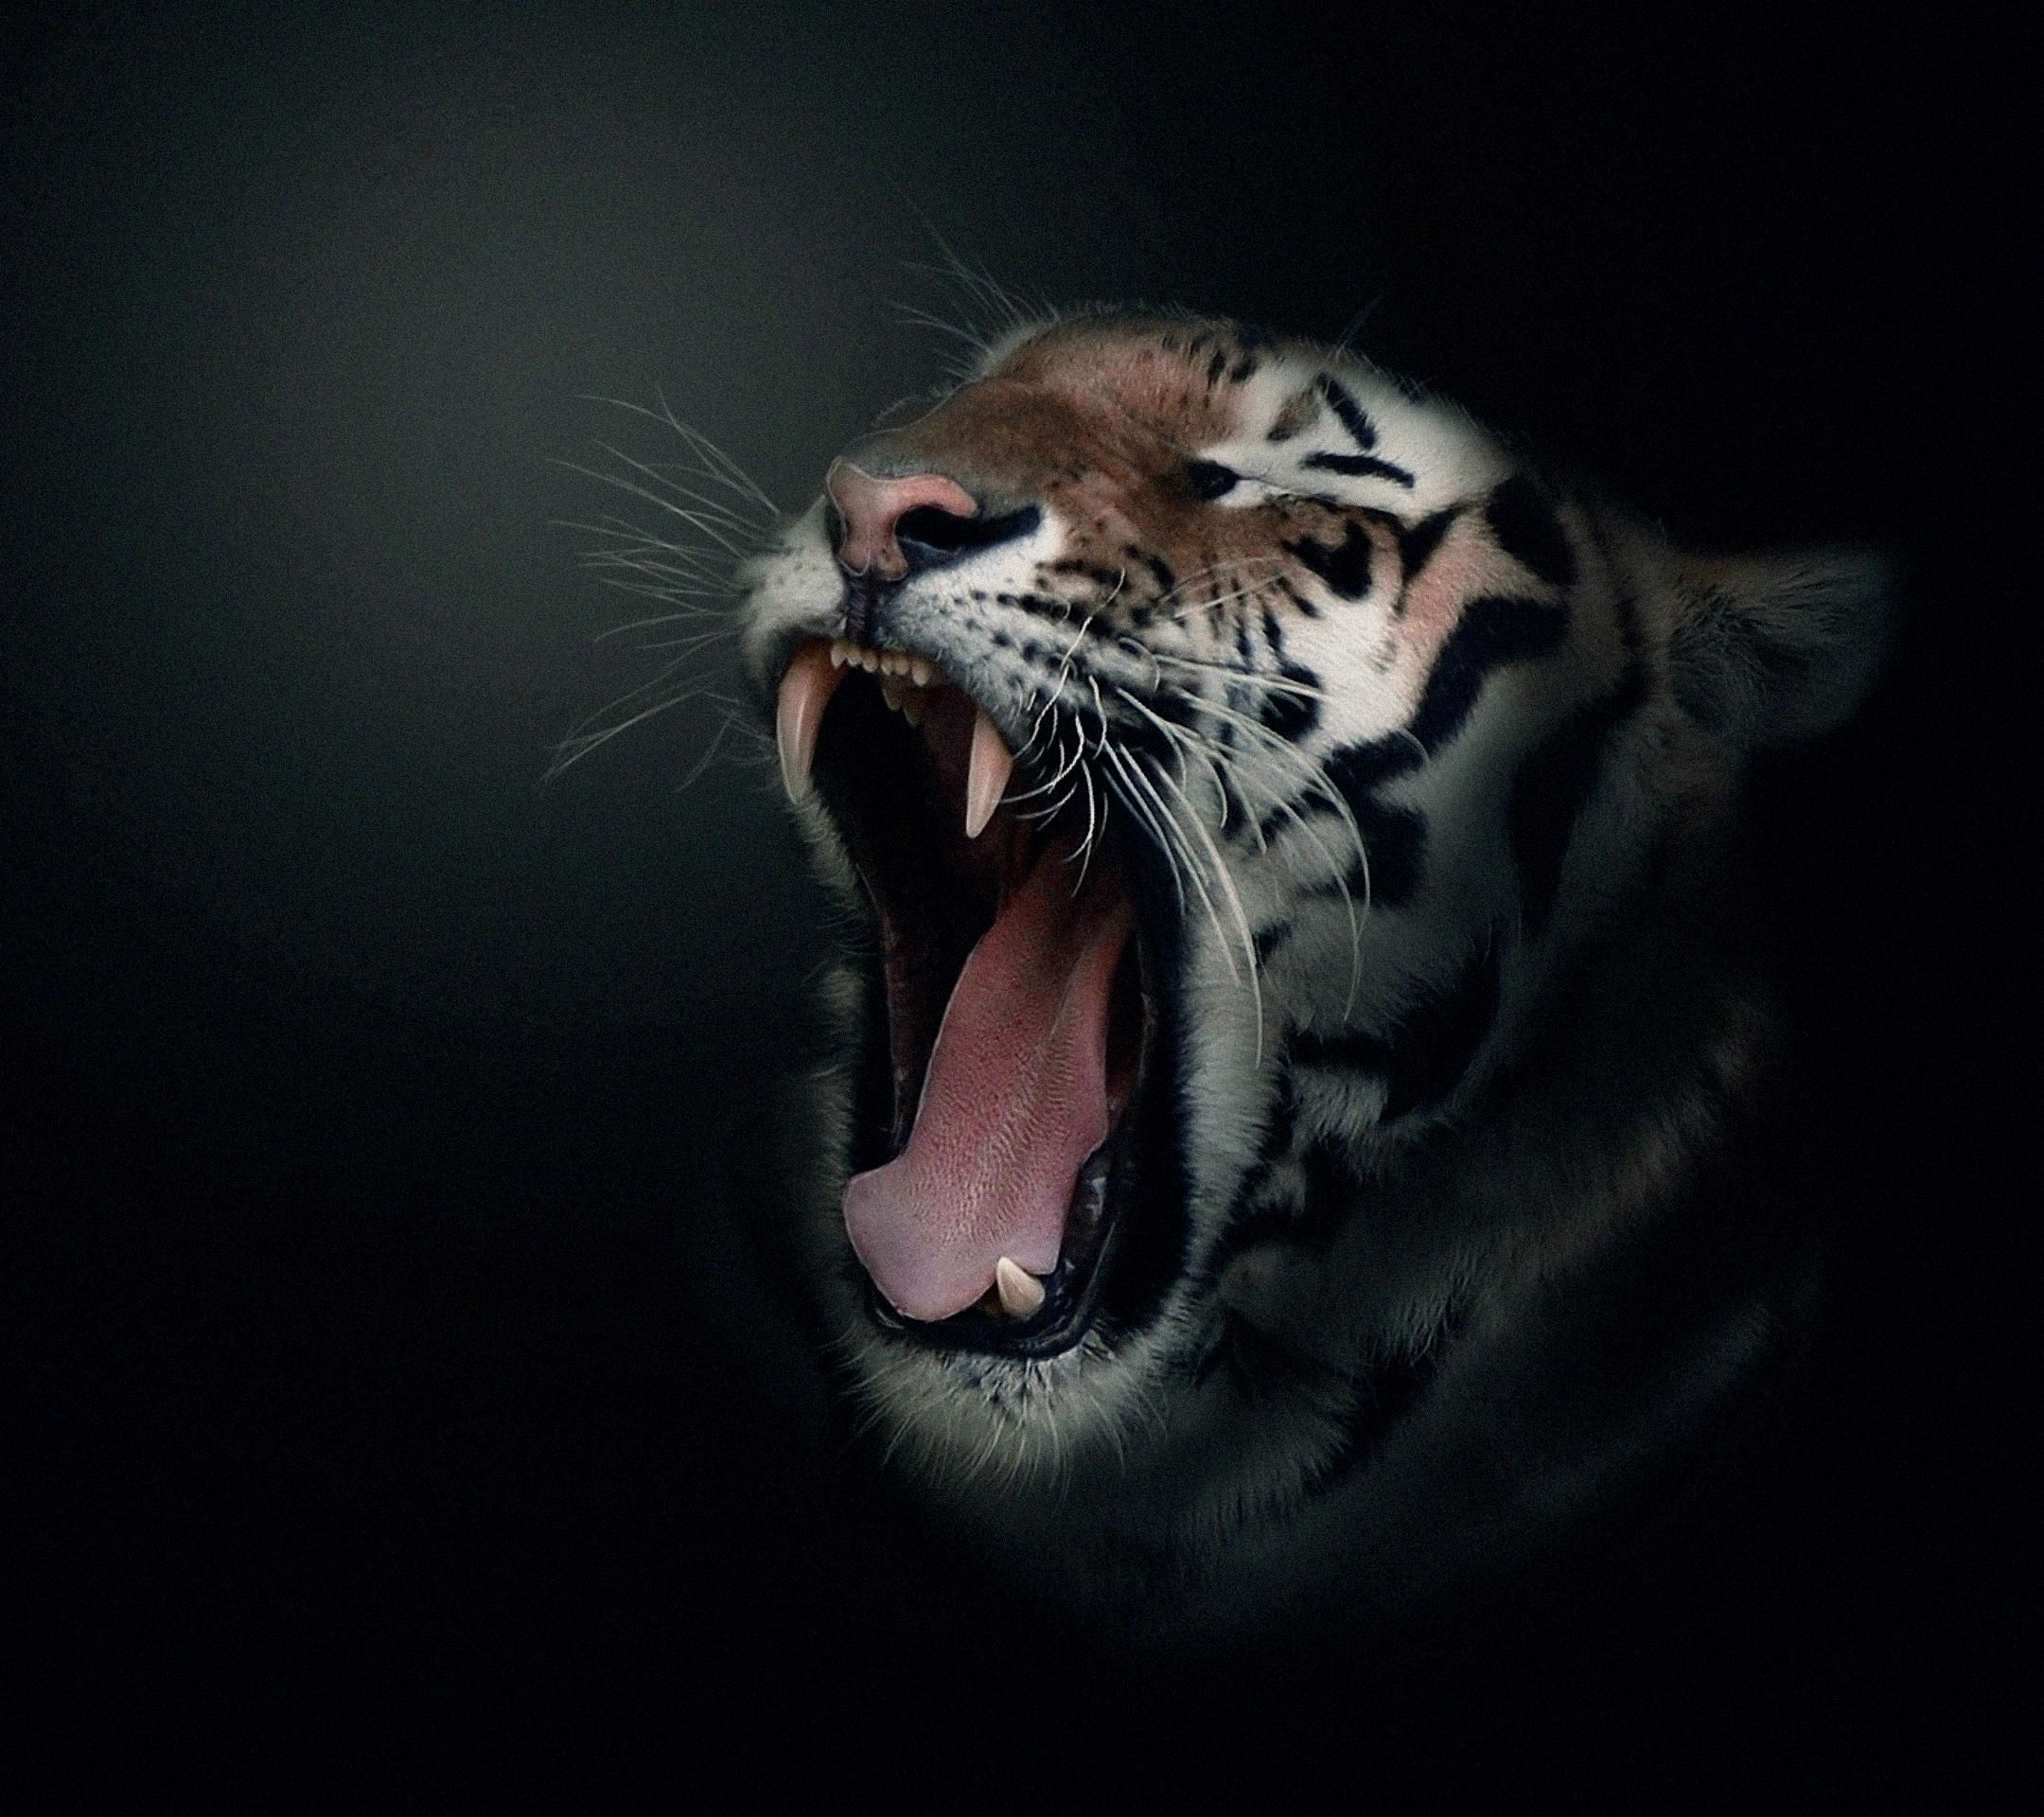 Tiger desktop background wallpaper free tigers pinterest tiger desktop background wallpaper free thecheapjerseys Image collections